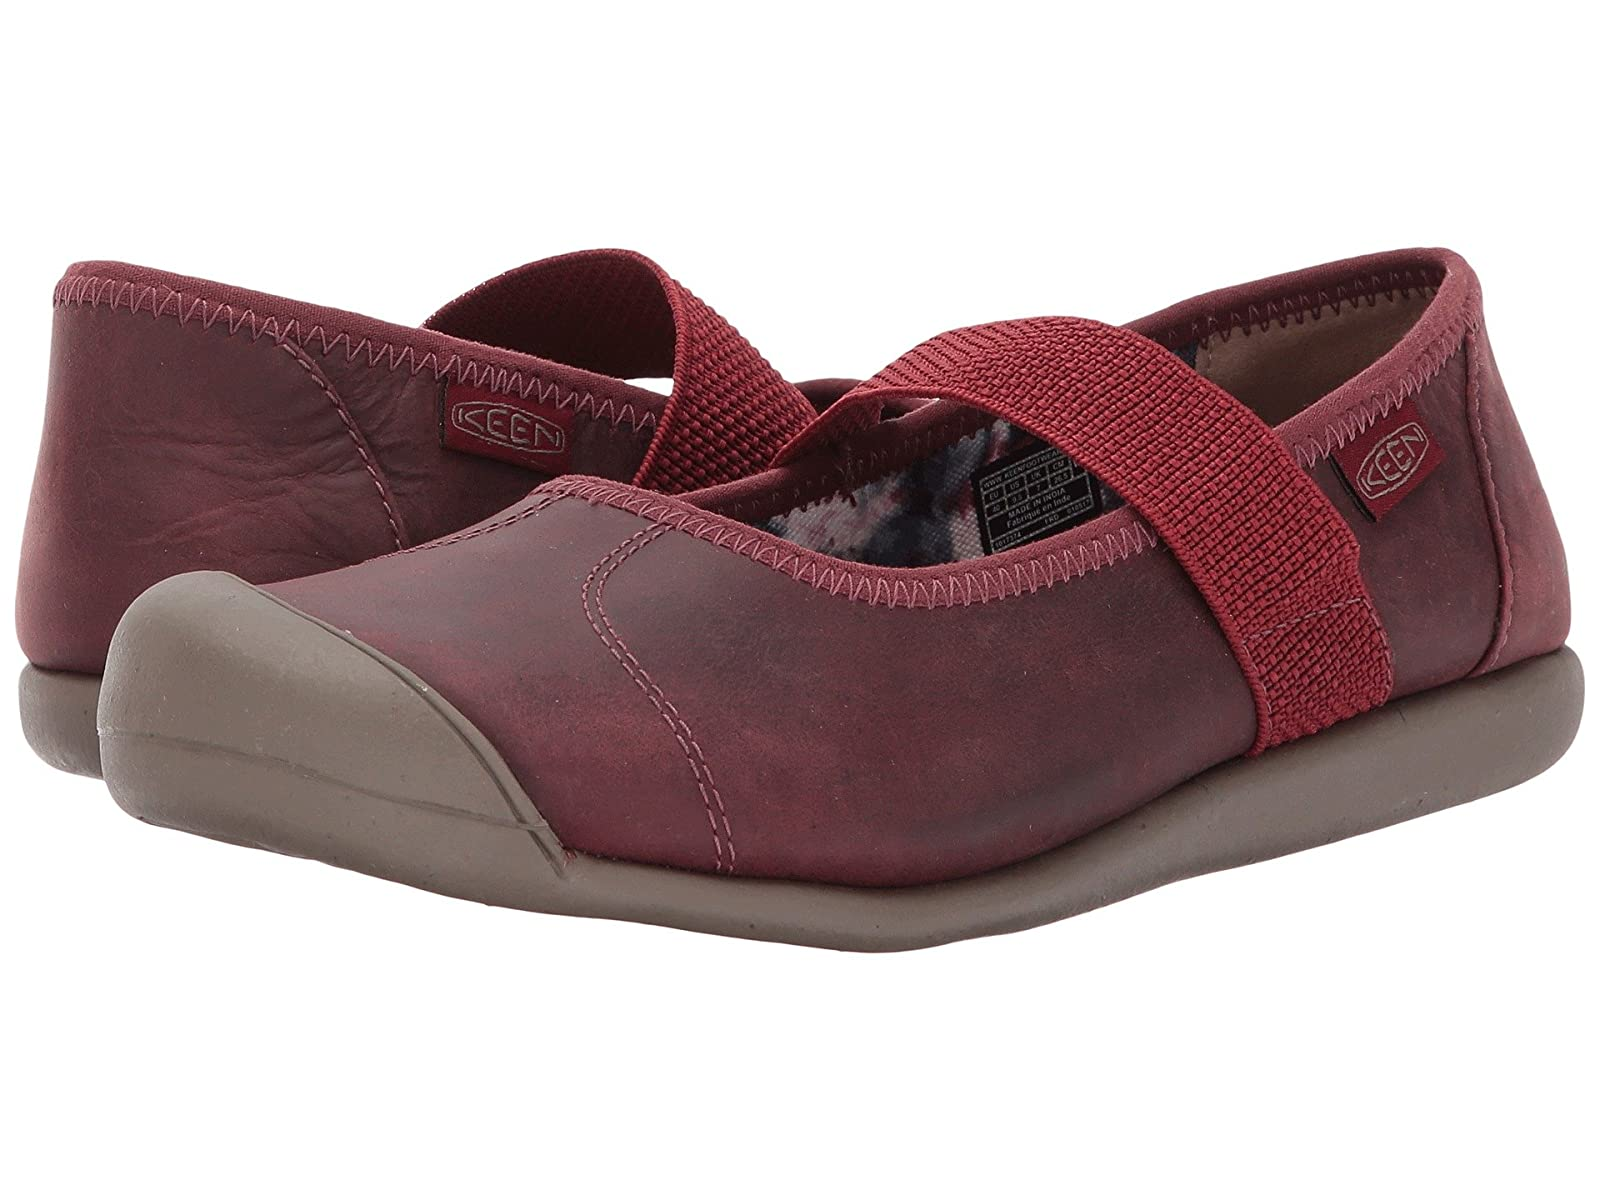 Keen Sienna MJ LeatherCheap and distinctive eye-catching shoes